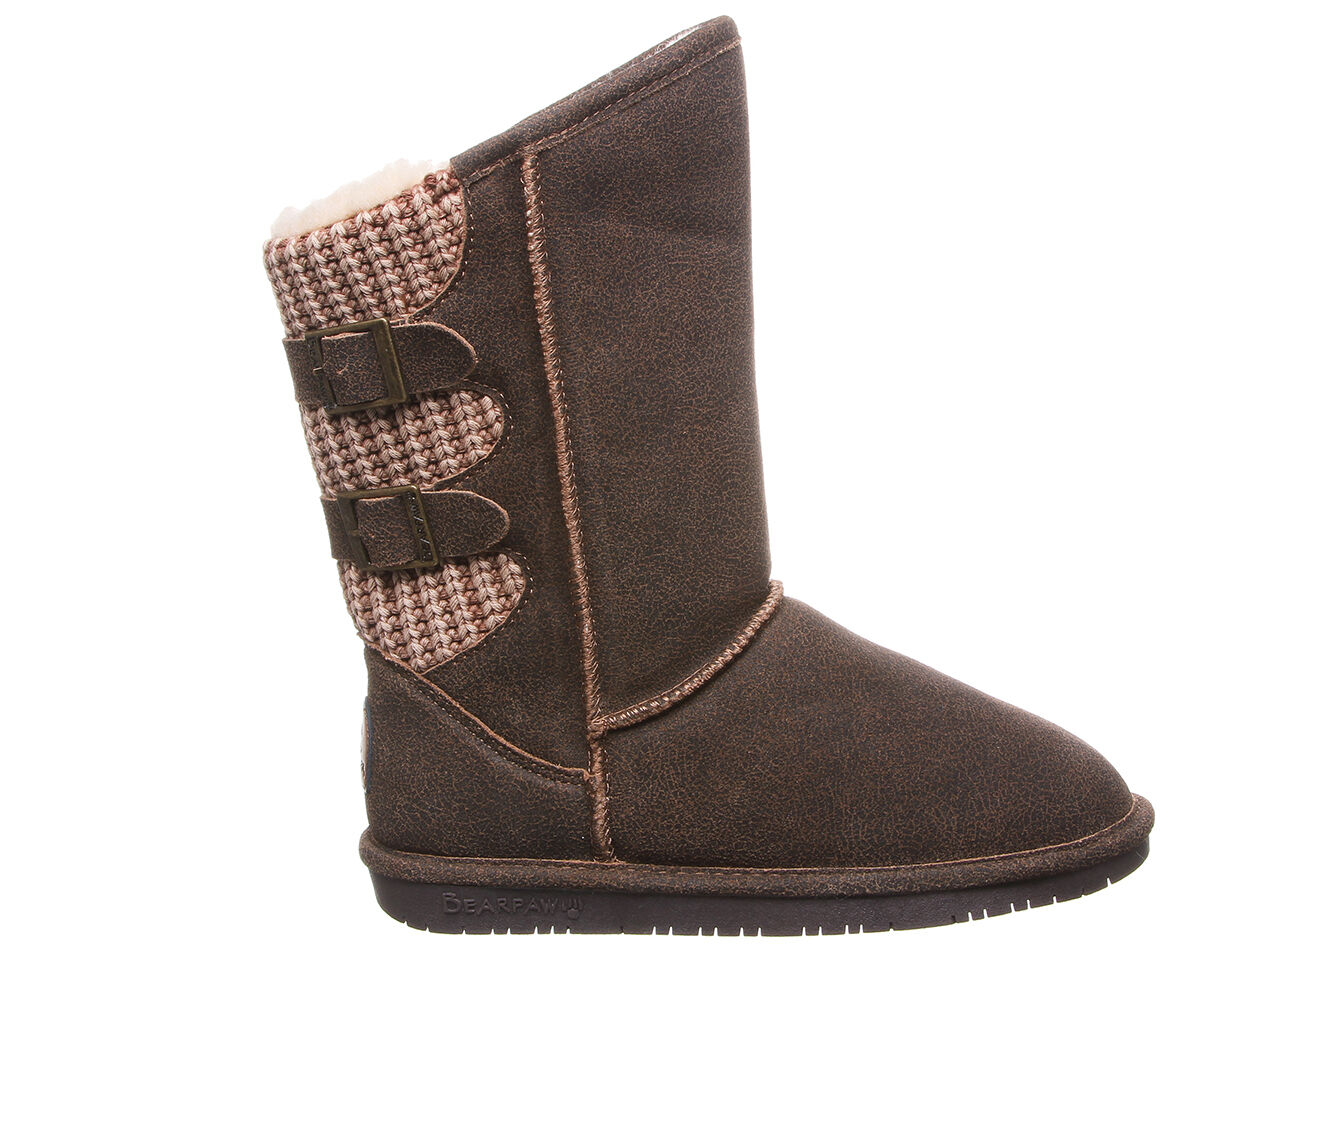 purchase comfortable Women's Bearpaw Boshie Wide Boots Chestnut